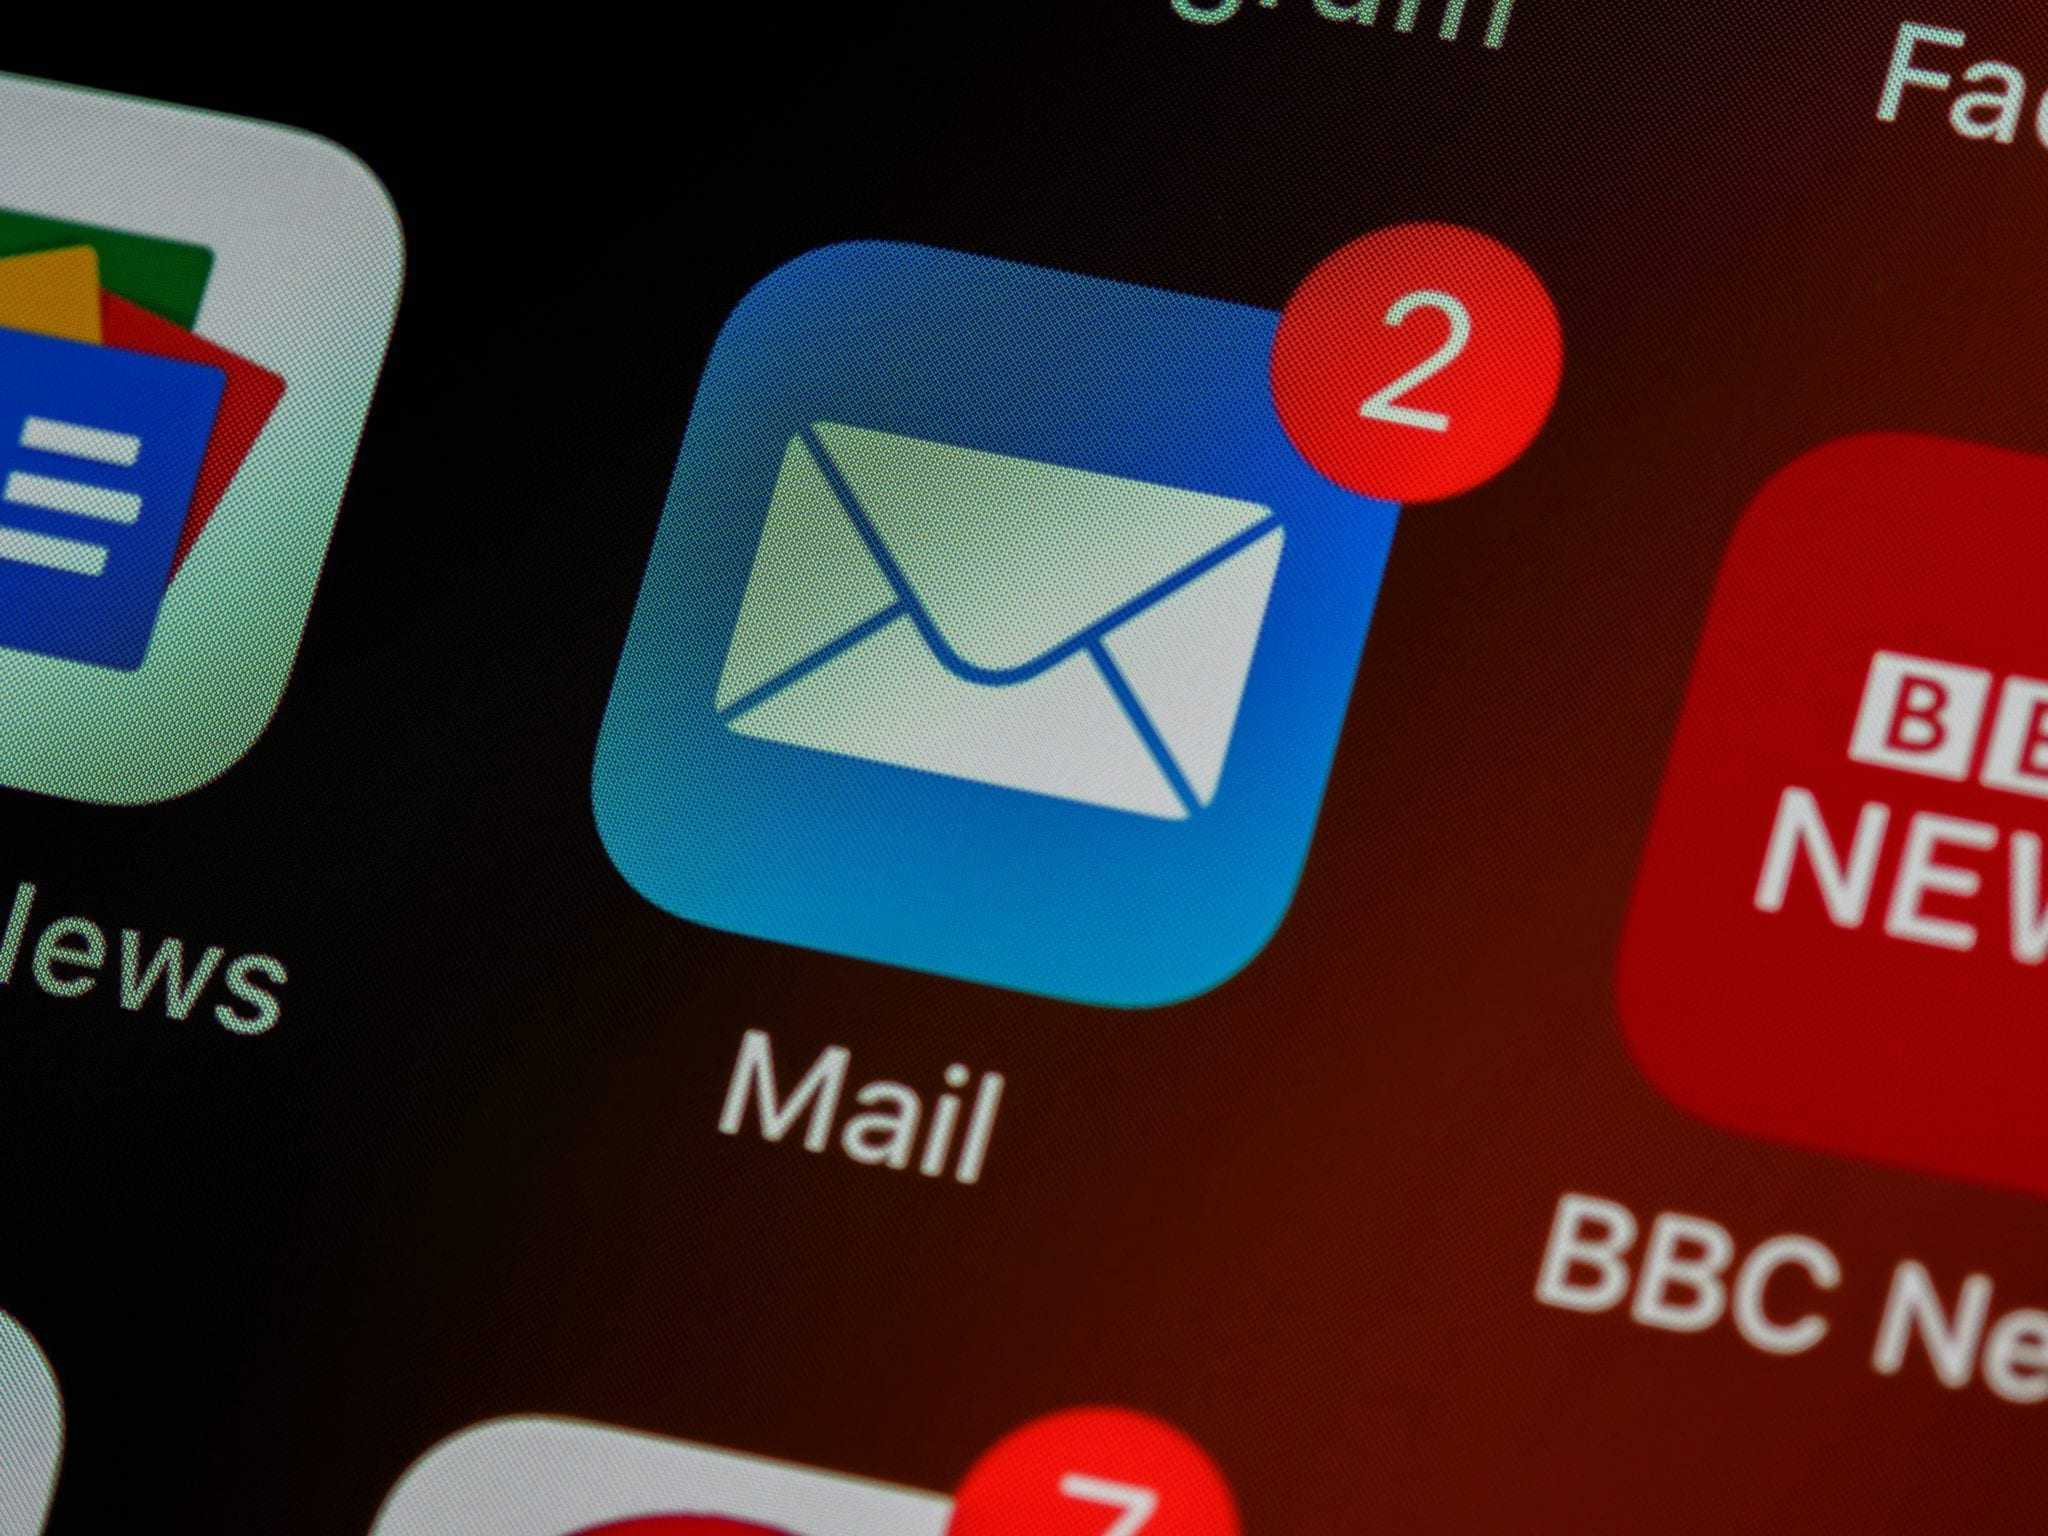 Simple ways to optimise your email marketing